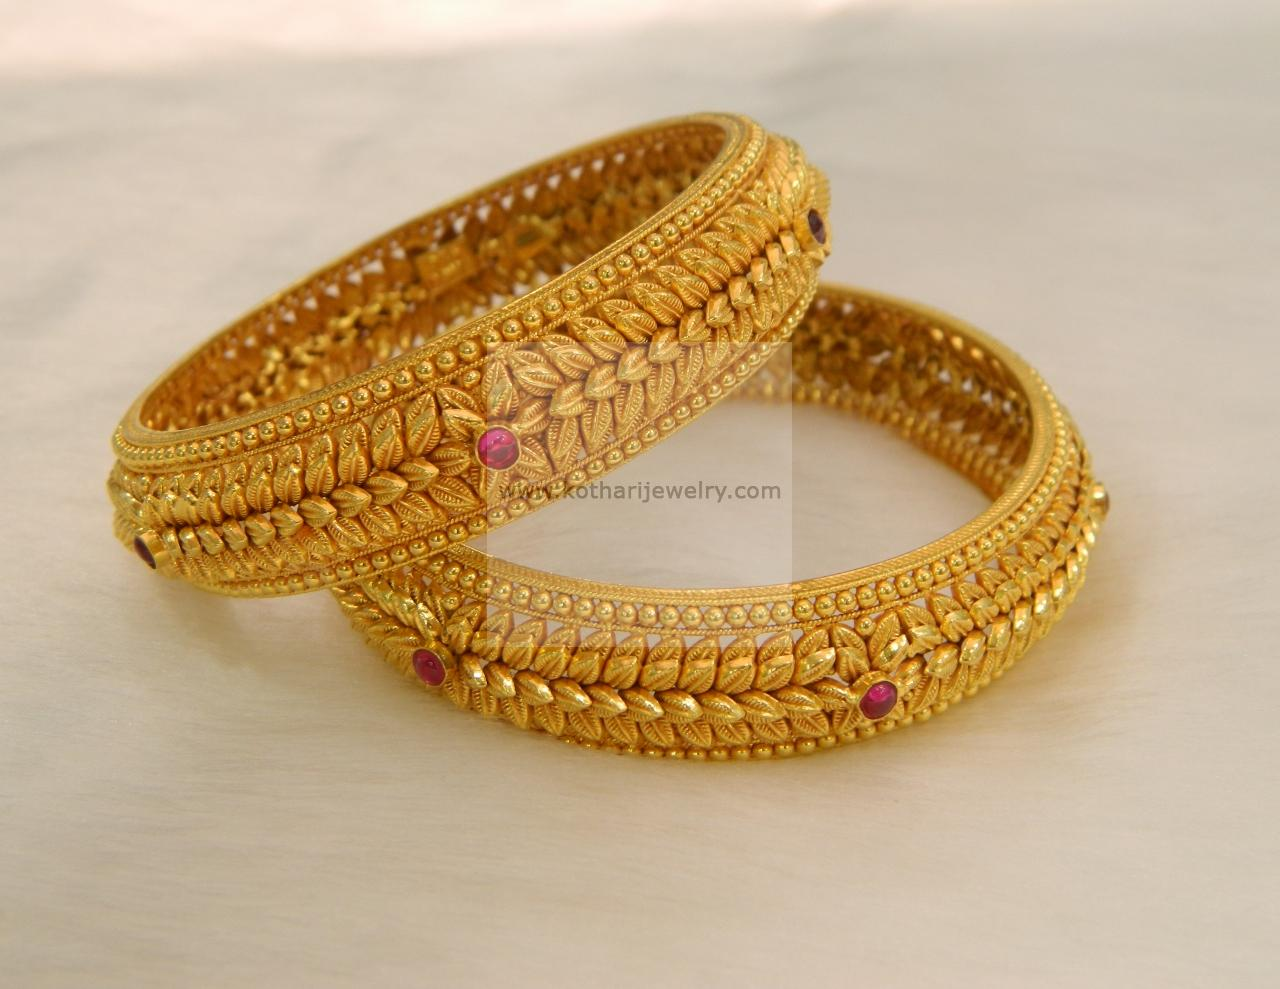 bracelets wolpe bangle bangles bracelet neta solid with banglebracelets gold circles